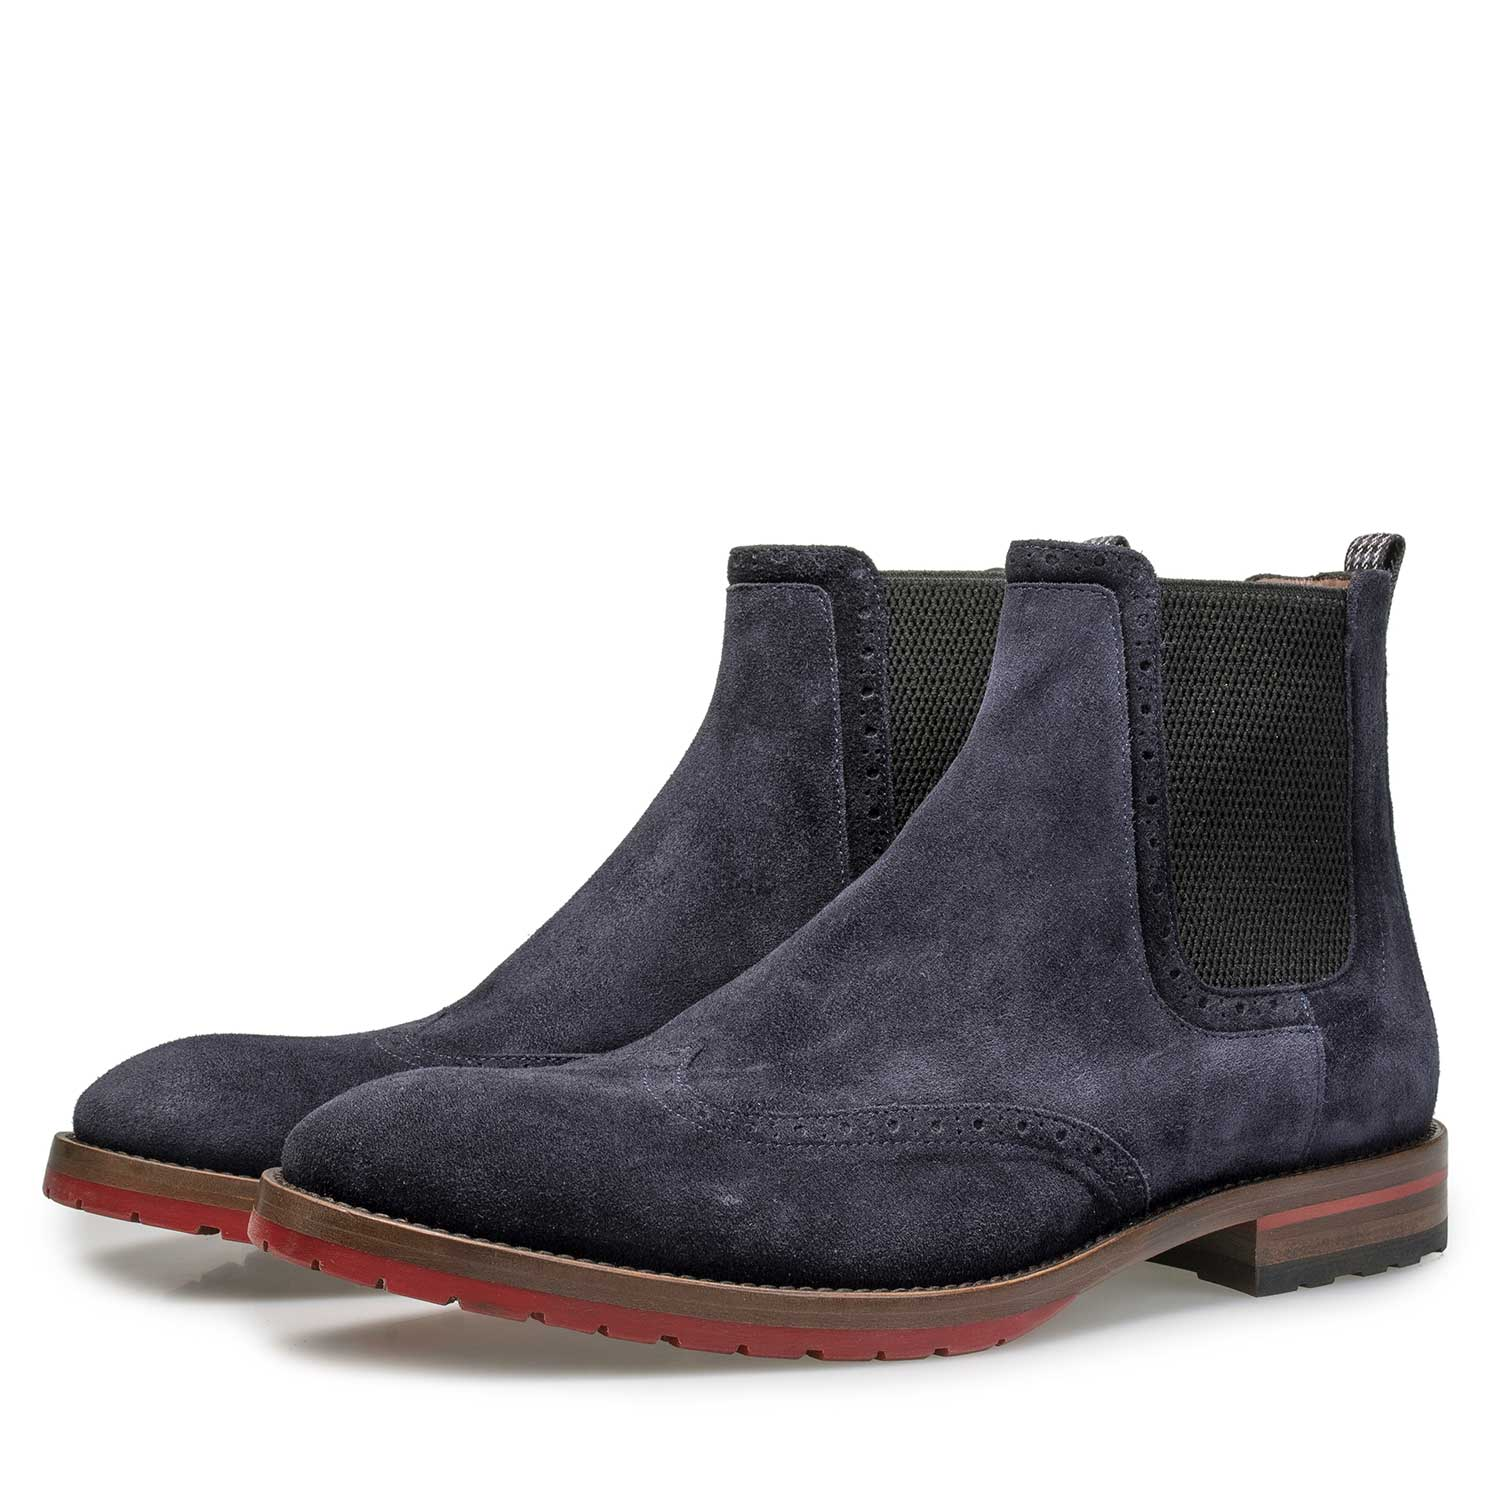 10329/07 - Blue suede leather Chelsea boot